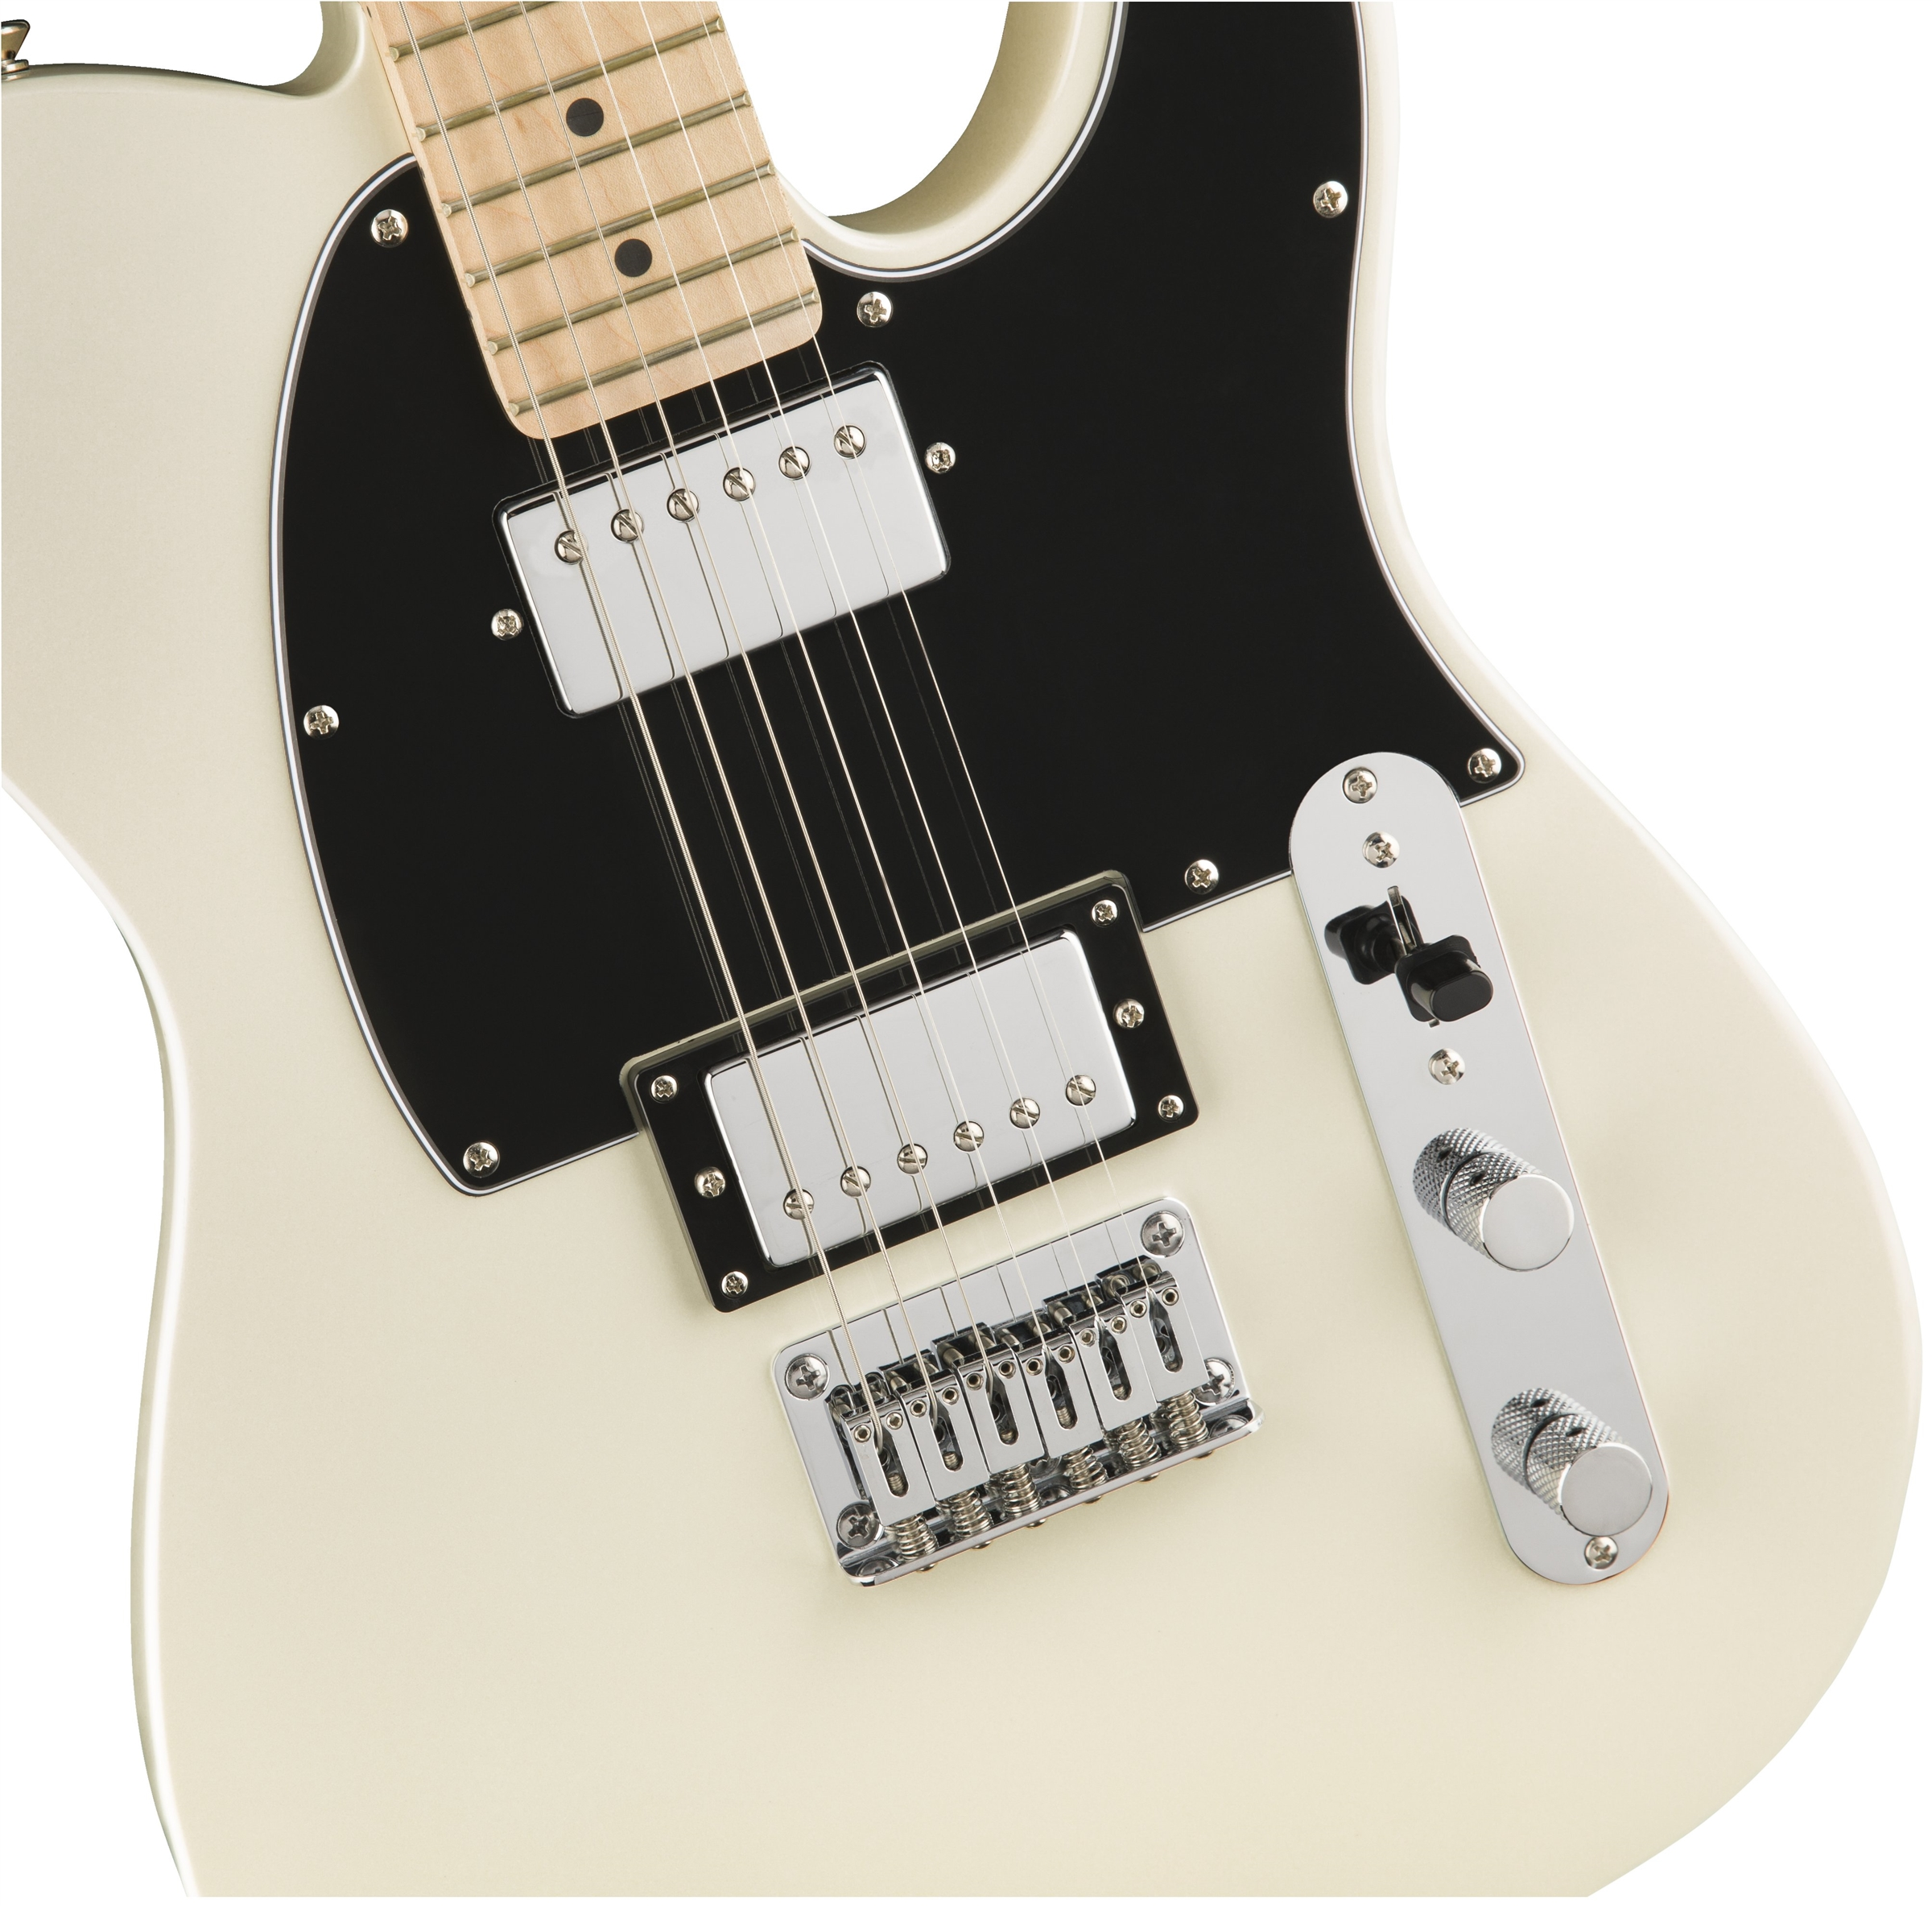 Contemporary Telecaster Hh Squier Electric Guitars Custom Wiring Diagram Besides Fender